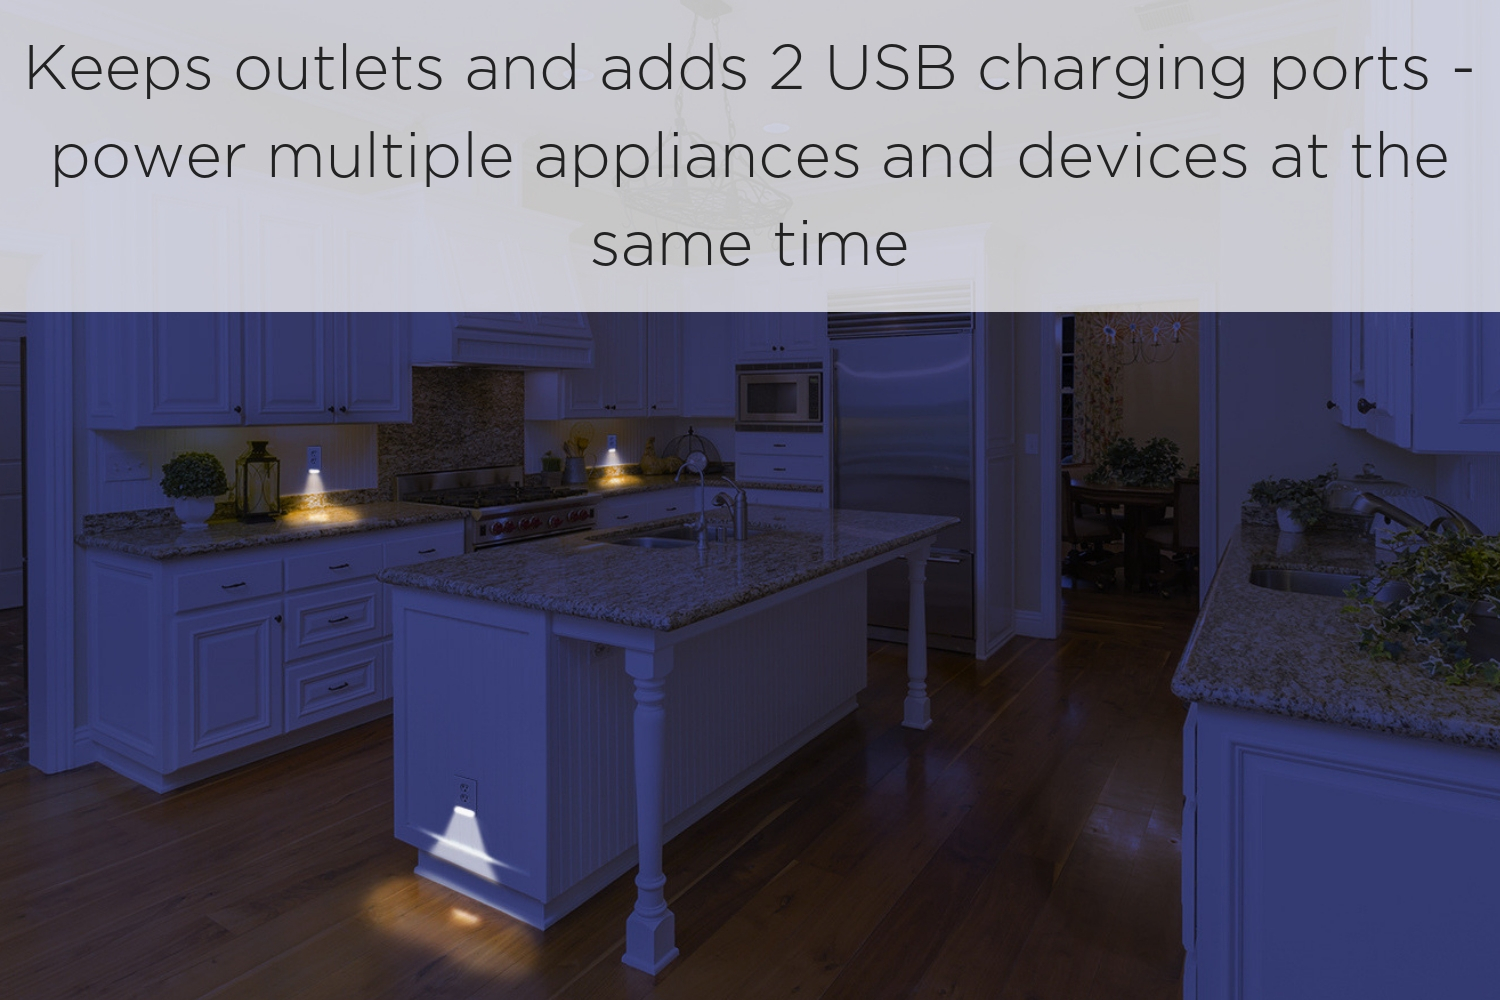 - 1 Pack AMERTAC-WESTEK LC-UCDO-W Wall Plate Guidelight and Access to Outlets Duplex, White LED Night Light Outlet Cover LumiCover Wallplate Nightlight with 2 USB Outlet Charger Ports Easy to Install